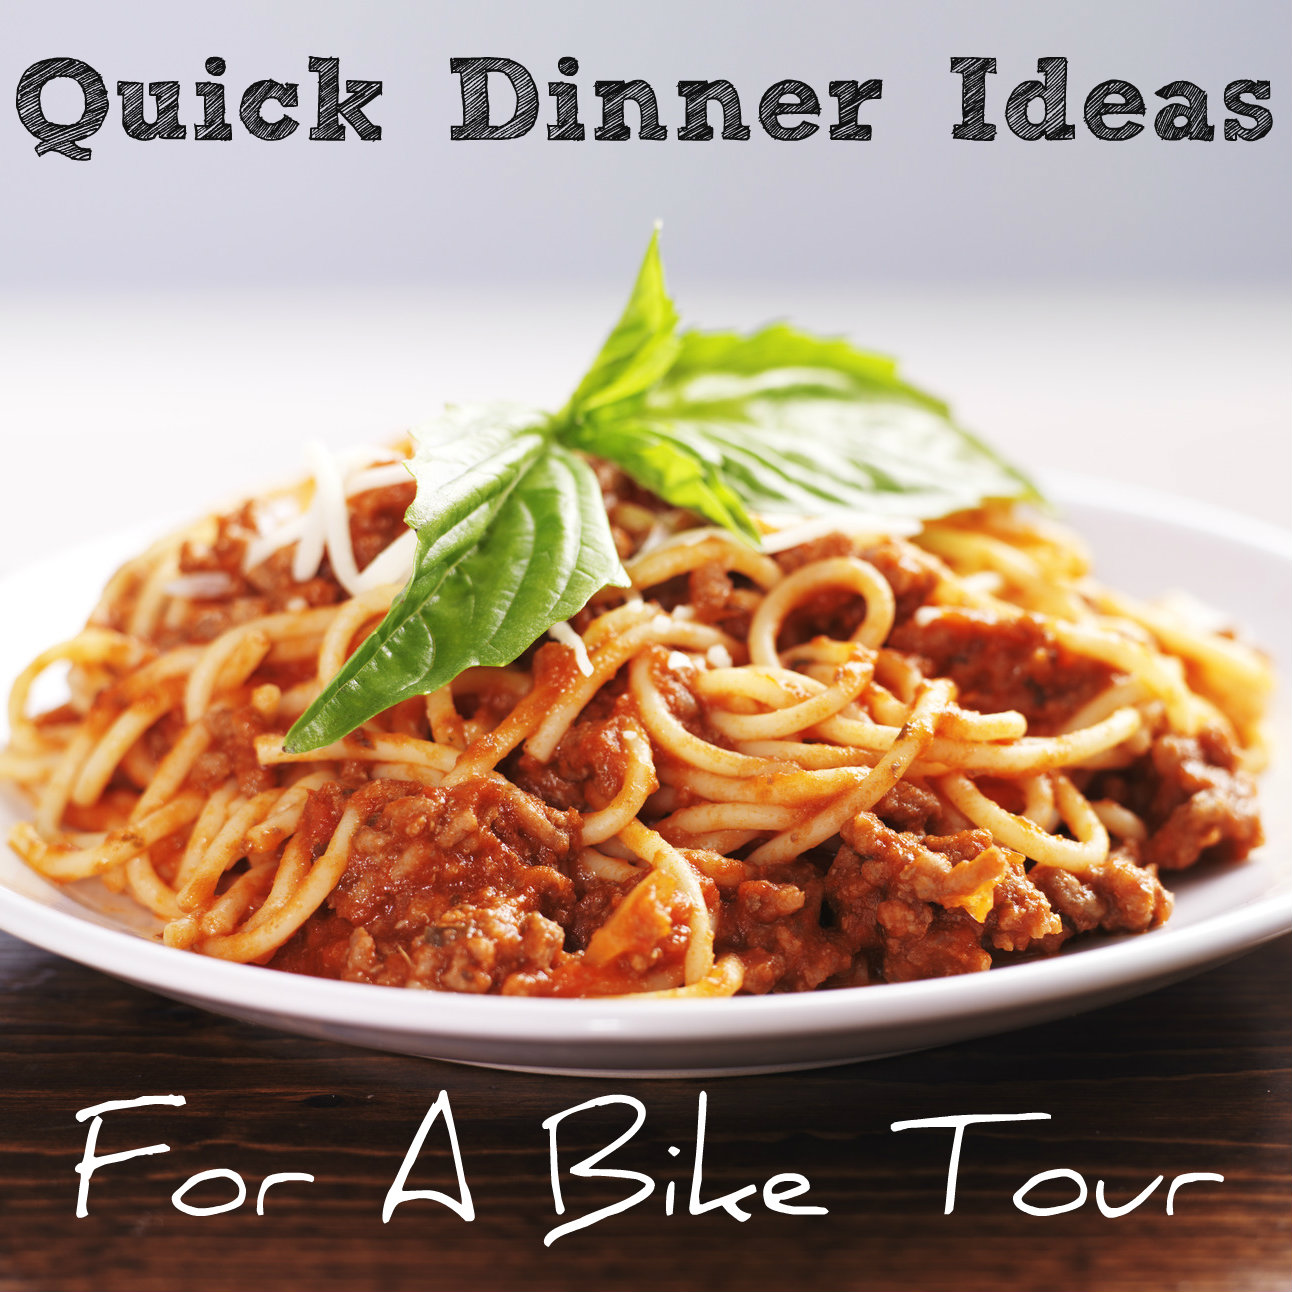 Quick Dinner Ideas For A Bike Tour